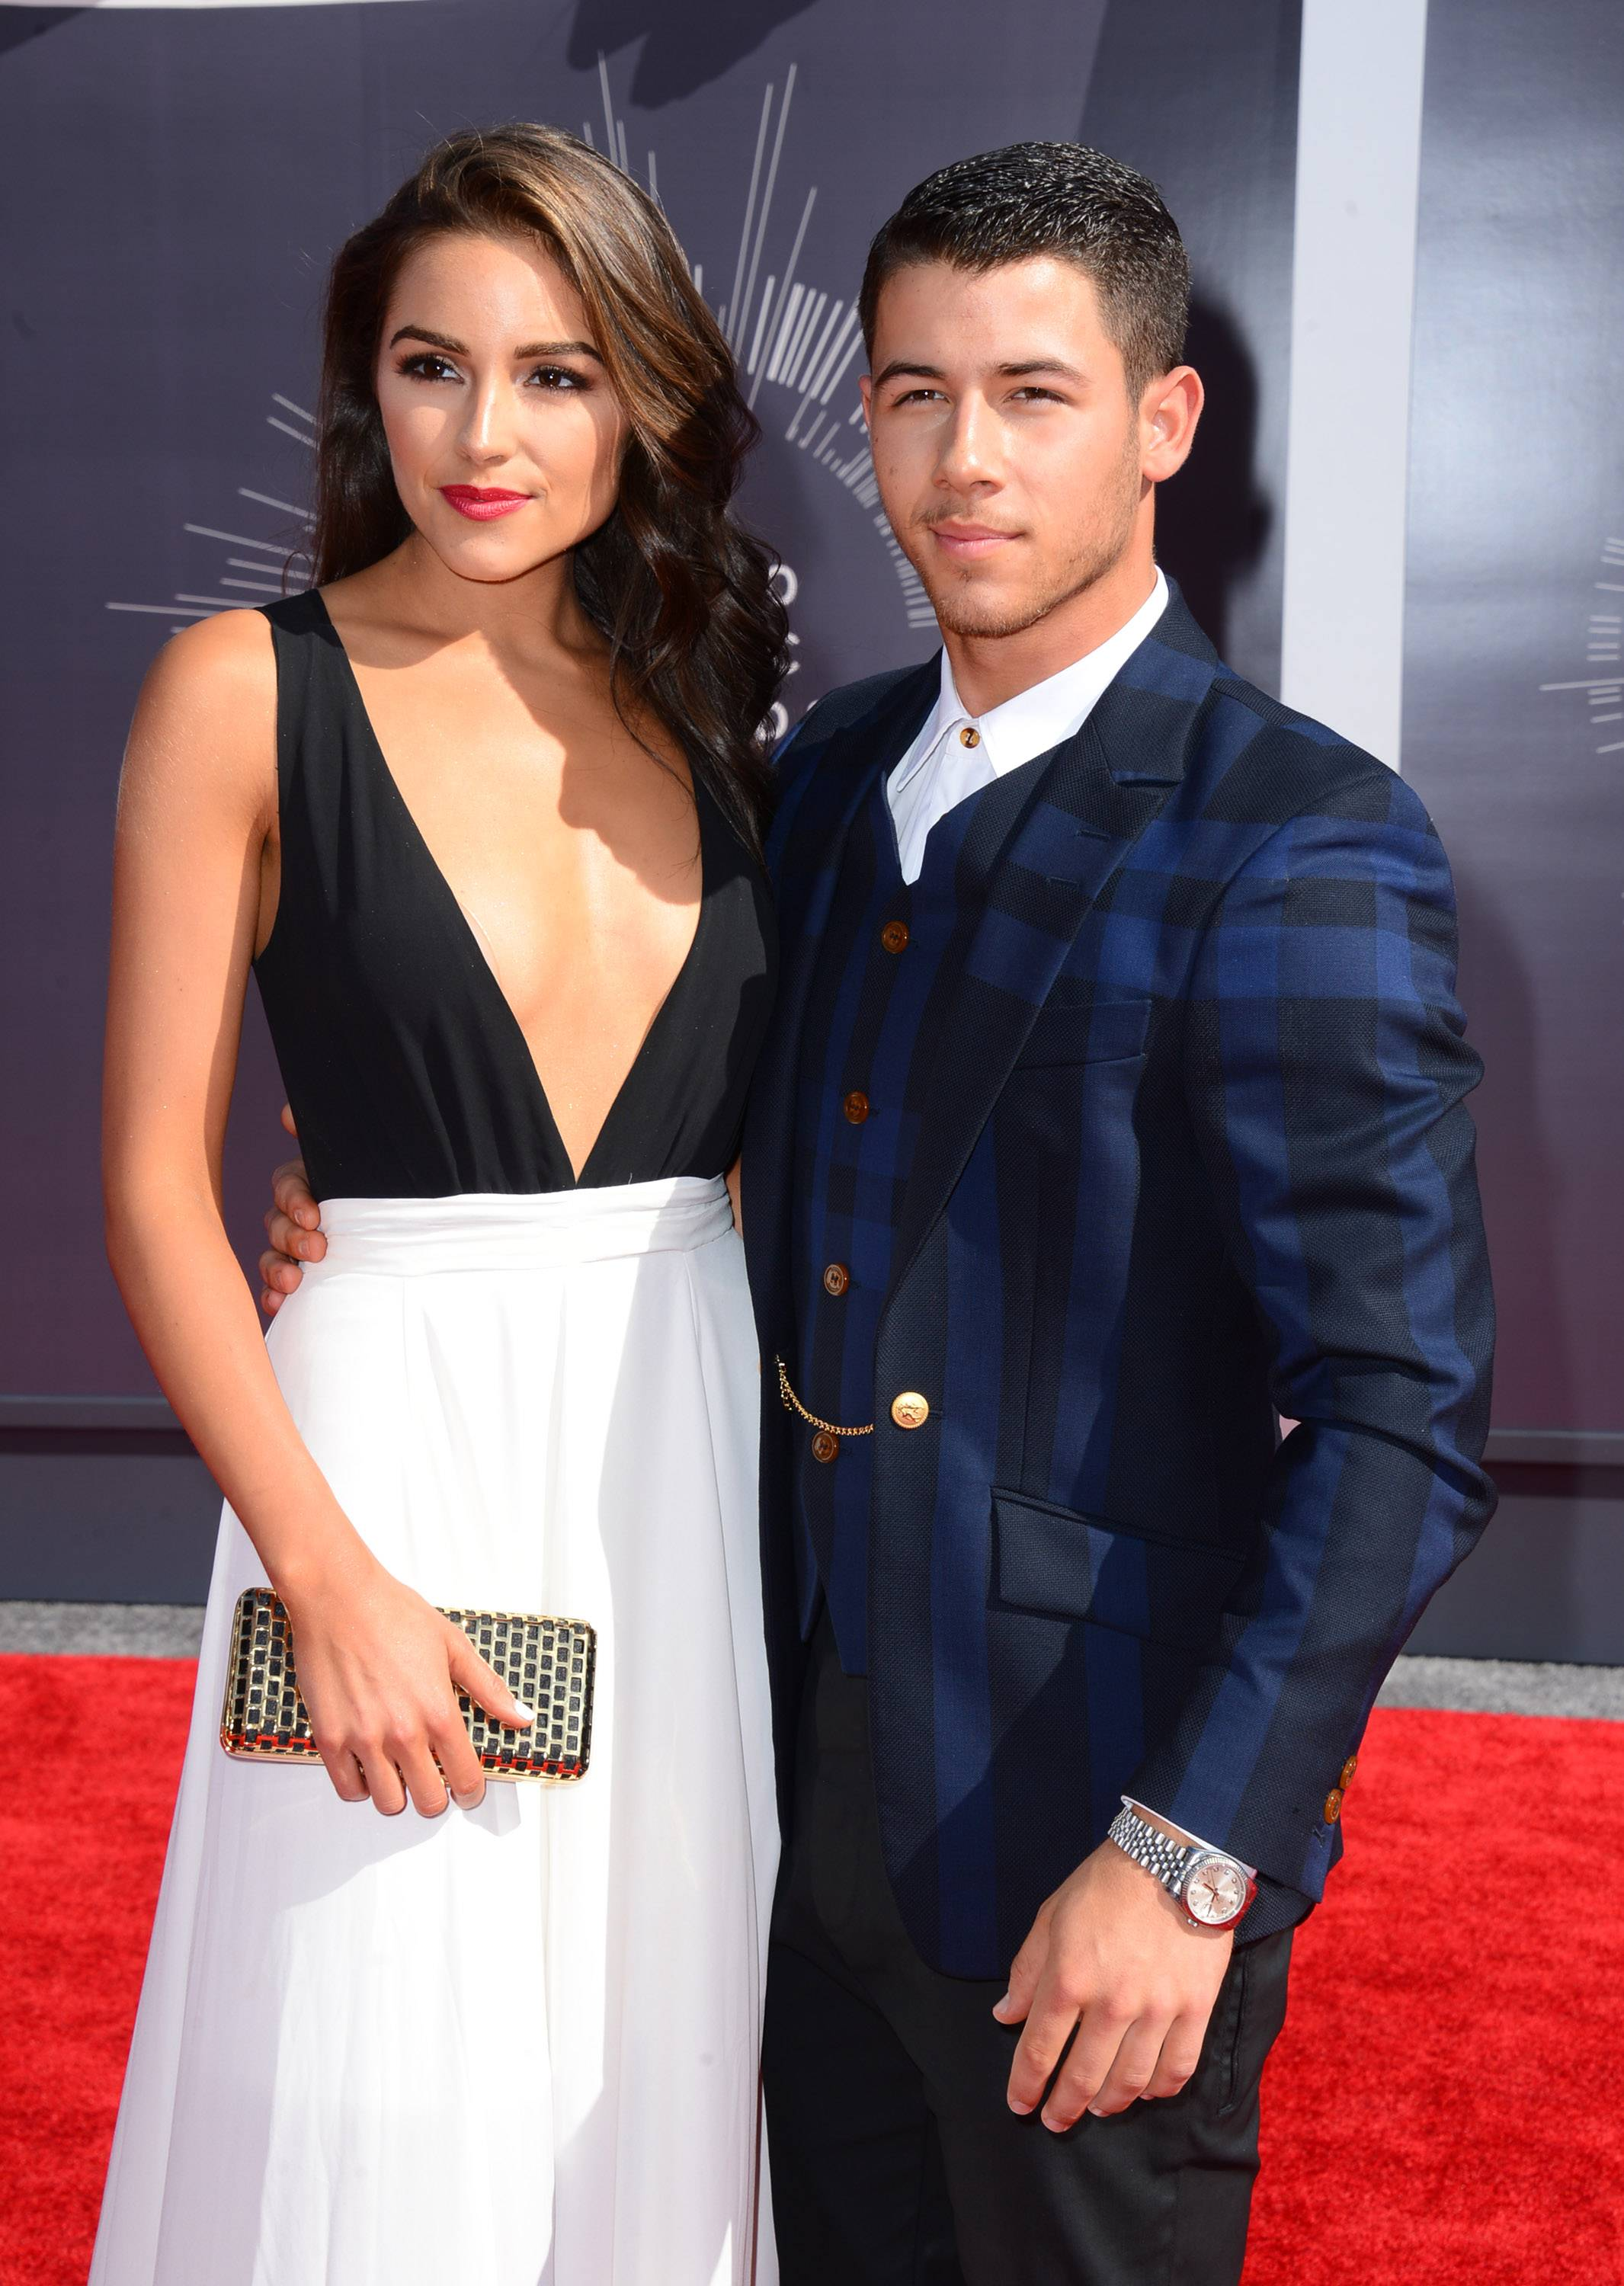 Olivia Culpo, left, and Nick Jonas arrive at the MTV Video Music Awards at The Forum on Sunday in Inglewood, Calif.